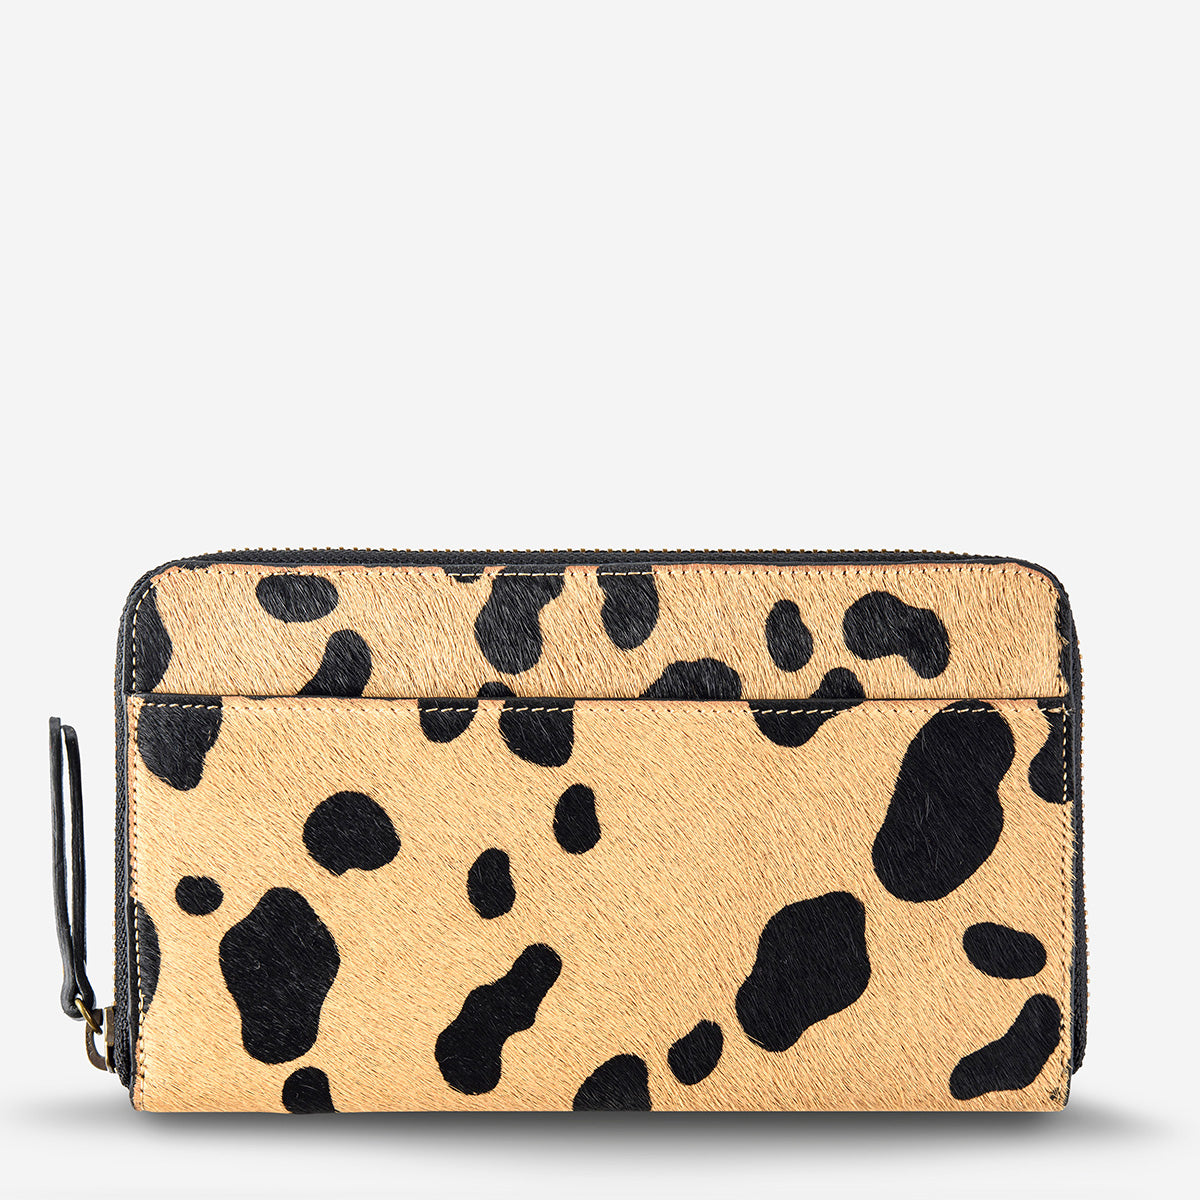 Status Anxiety Delilah Travel Wallet - Wild Cat